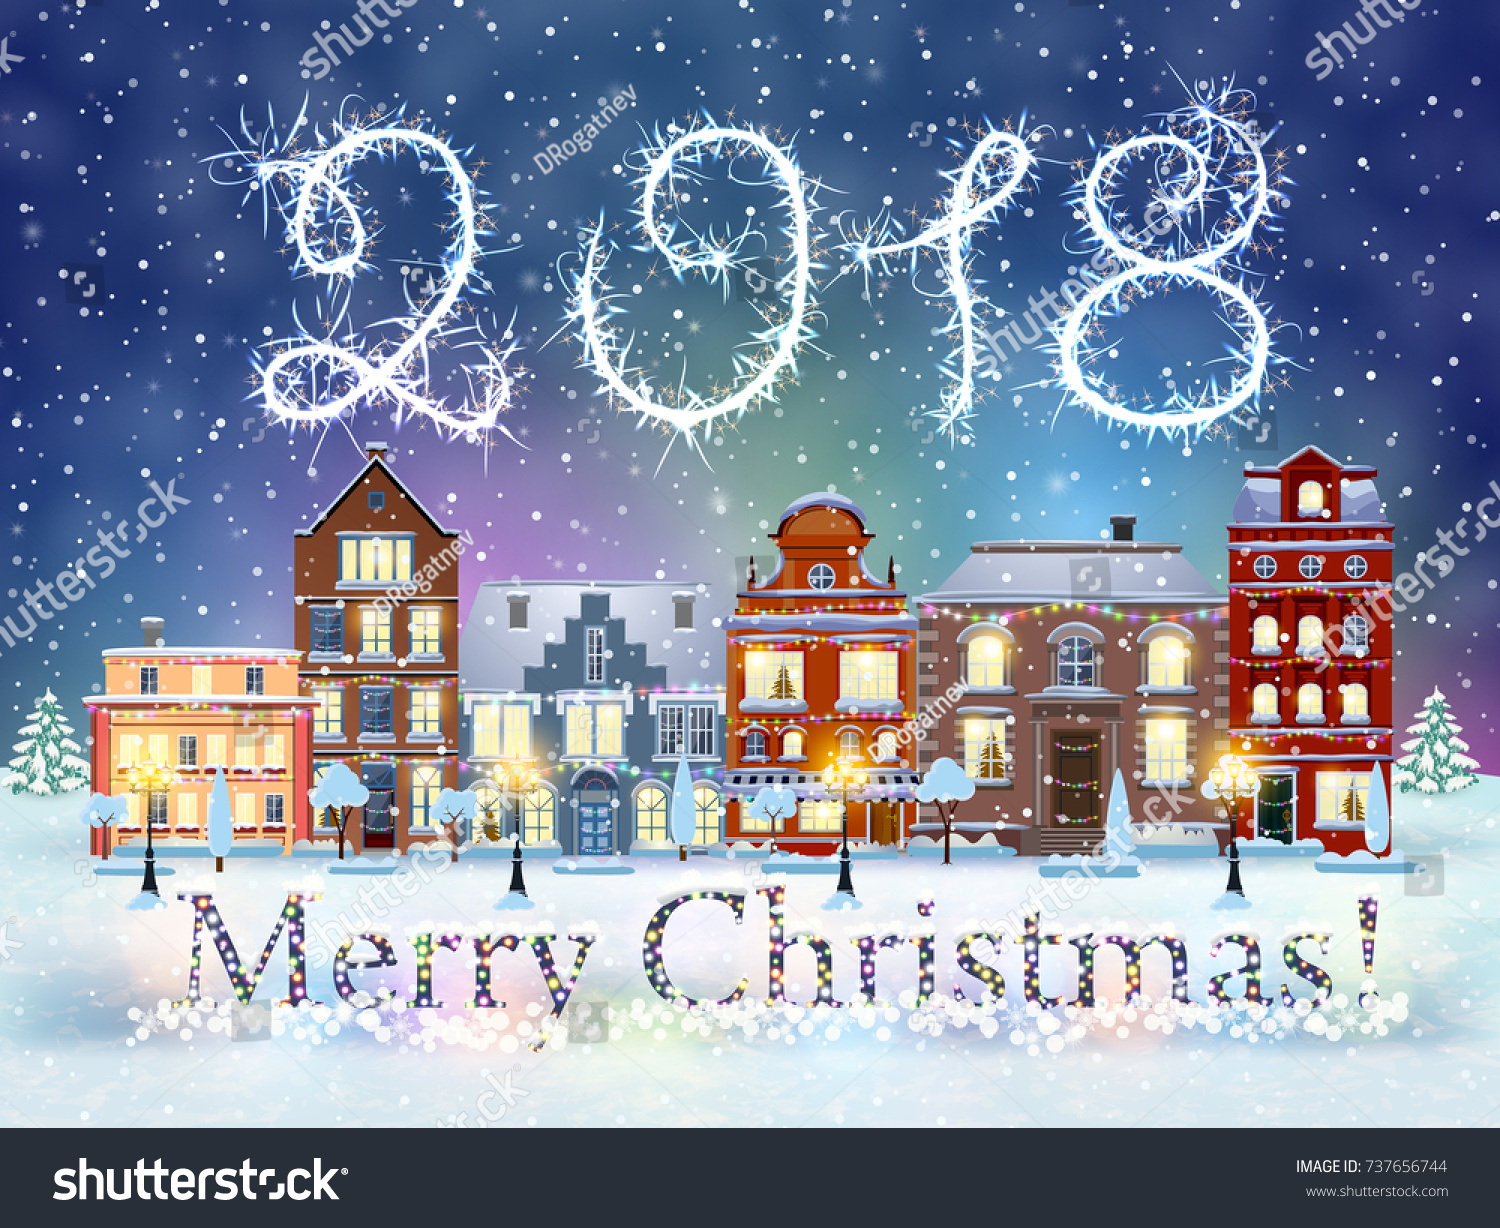 happy new year and merry christmas winter old town street with trees christmas card with